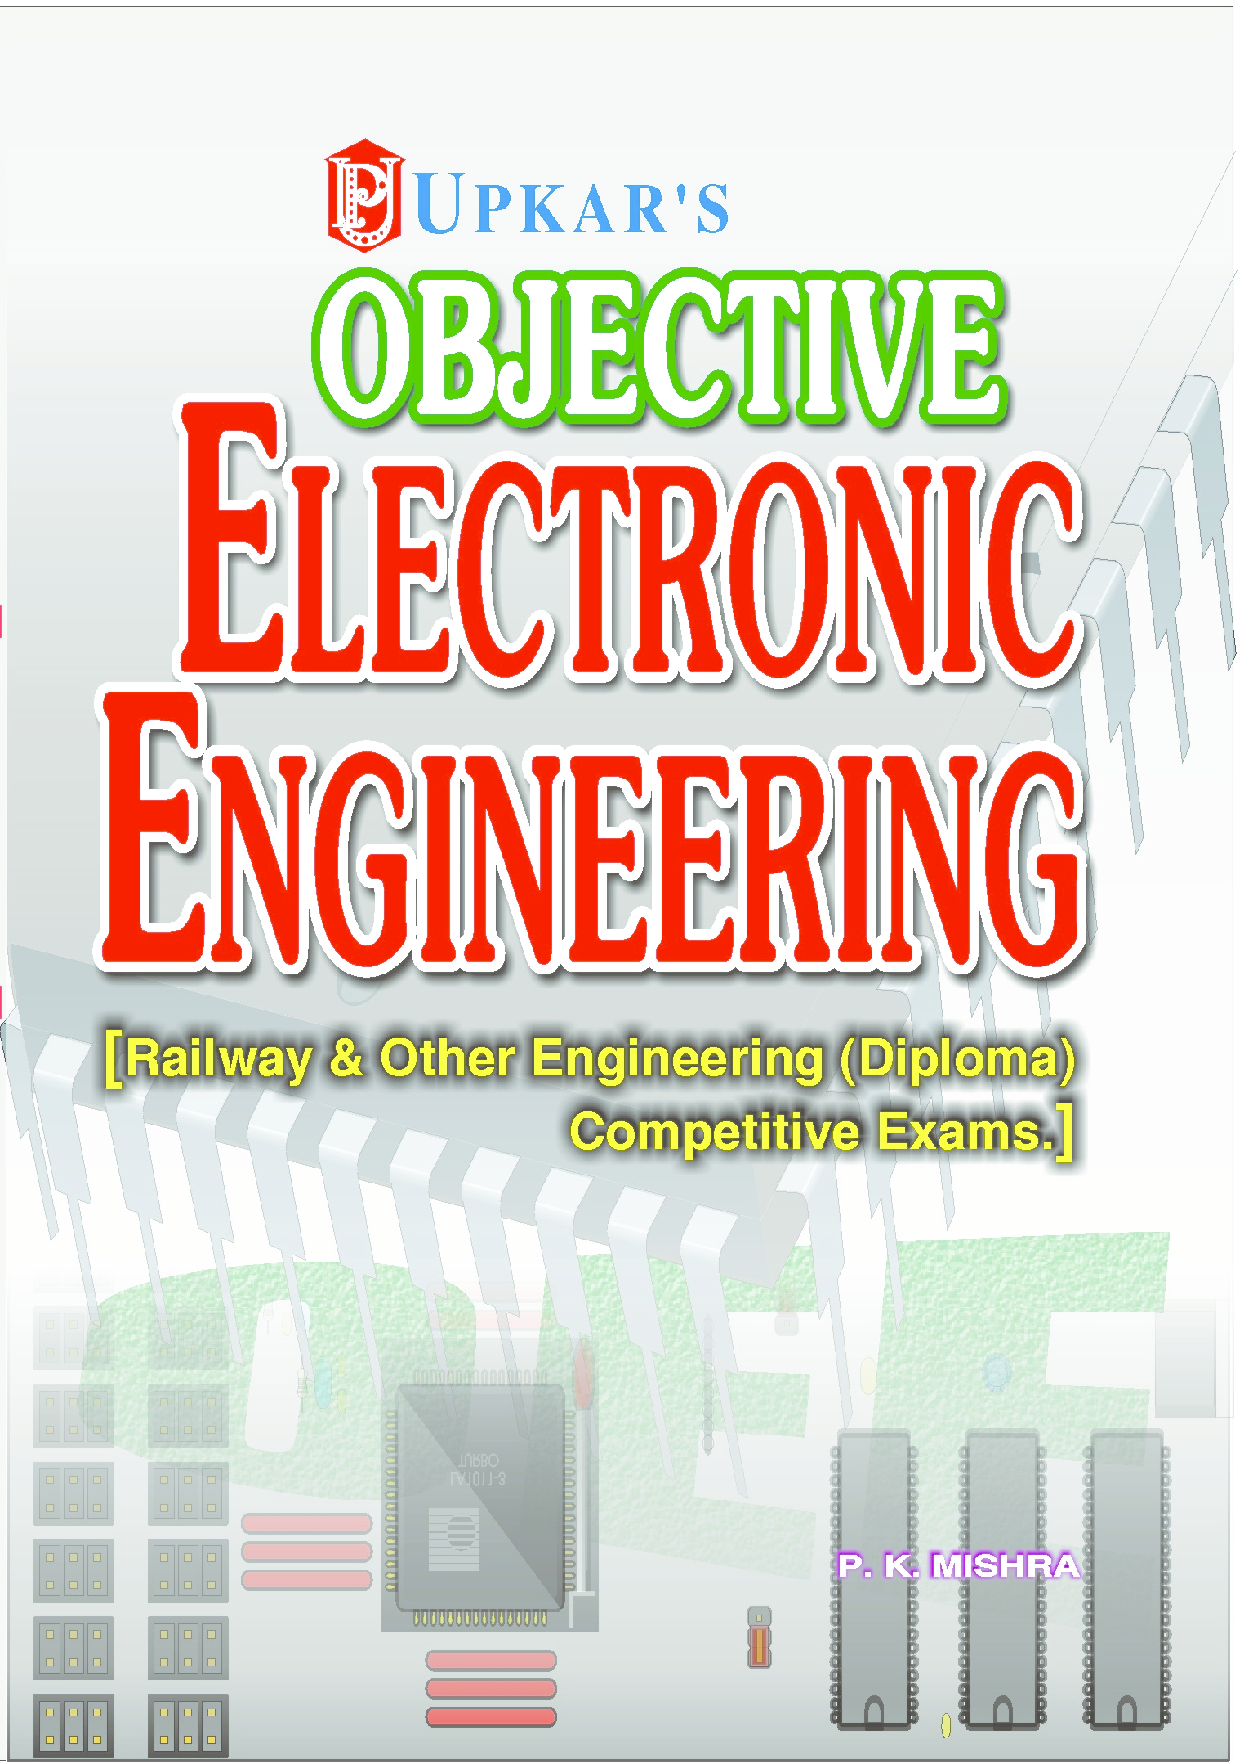 Objective Electronic Engineering Railway and Other Engineering Diploma Compettive Exams - Page 1